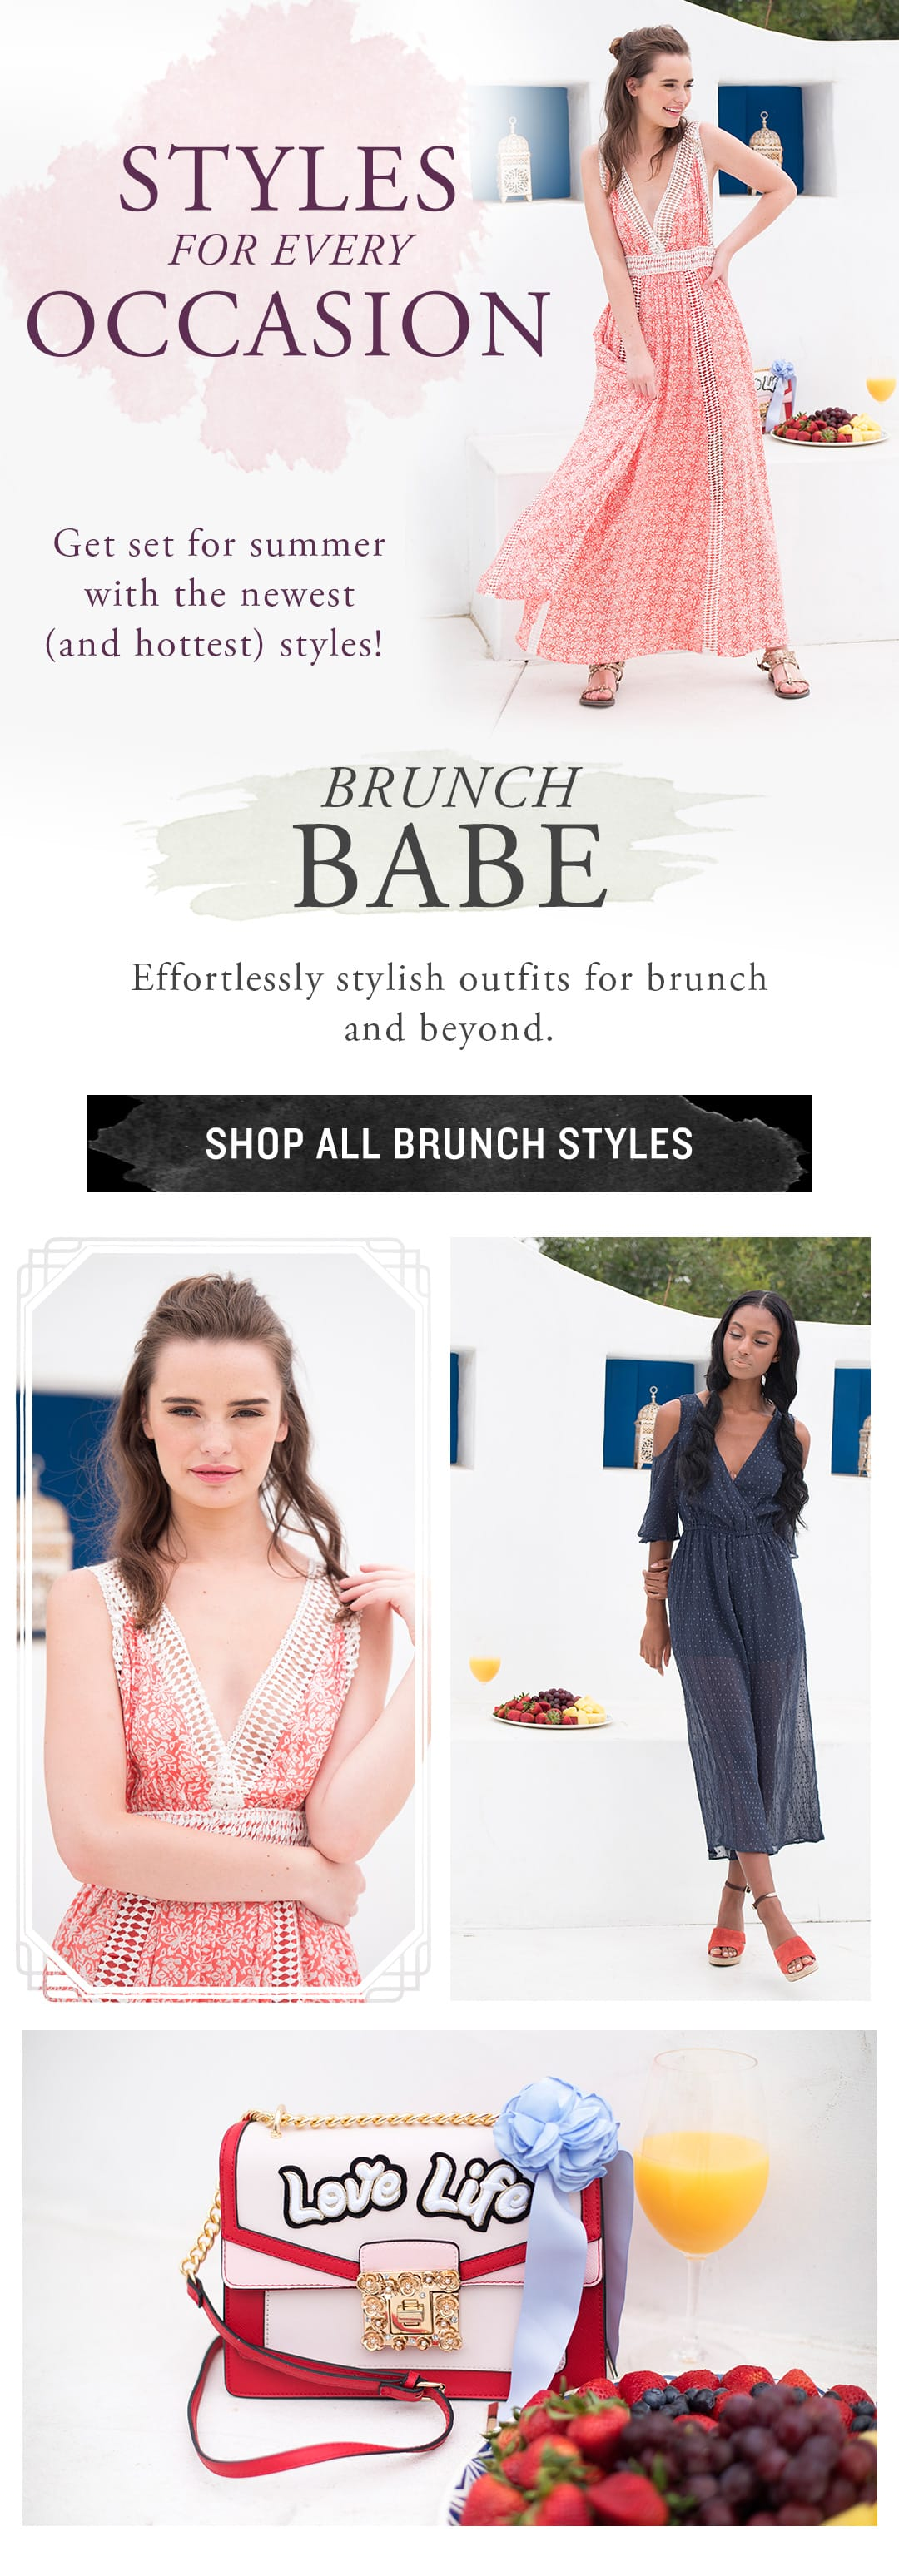 Shop Brunch